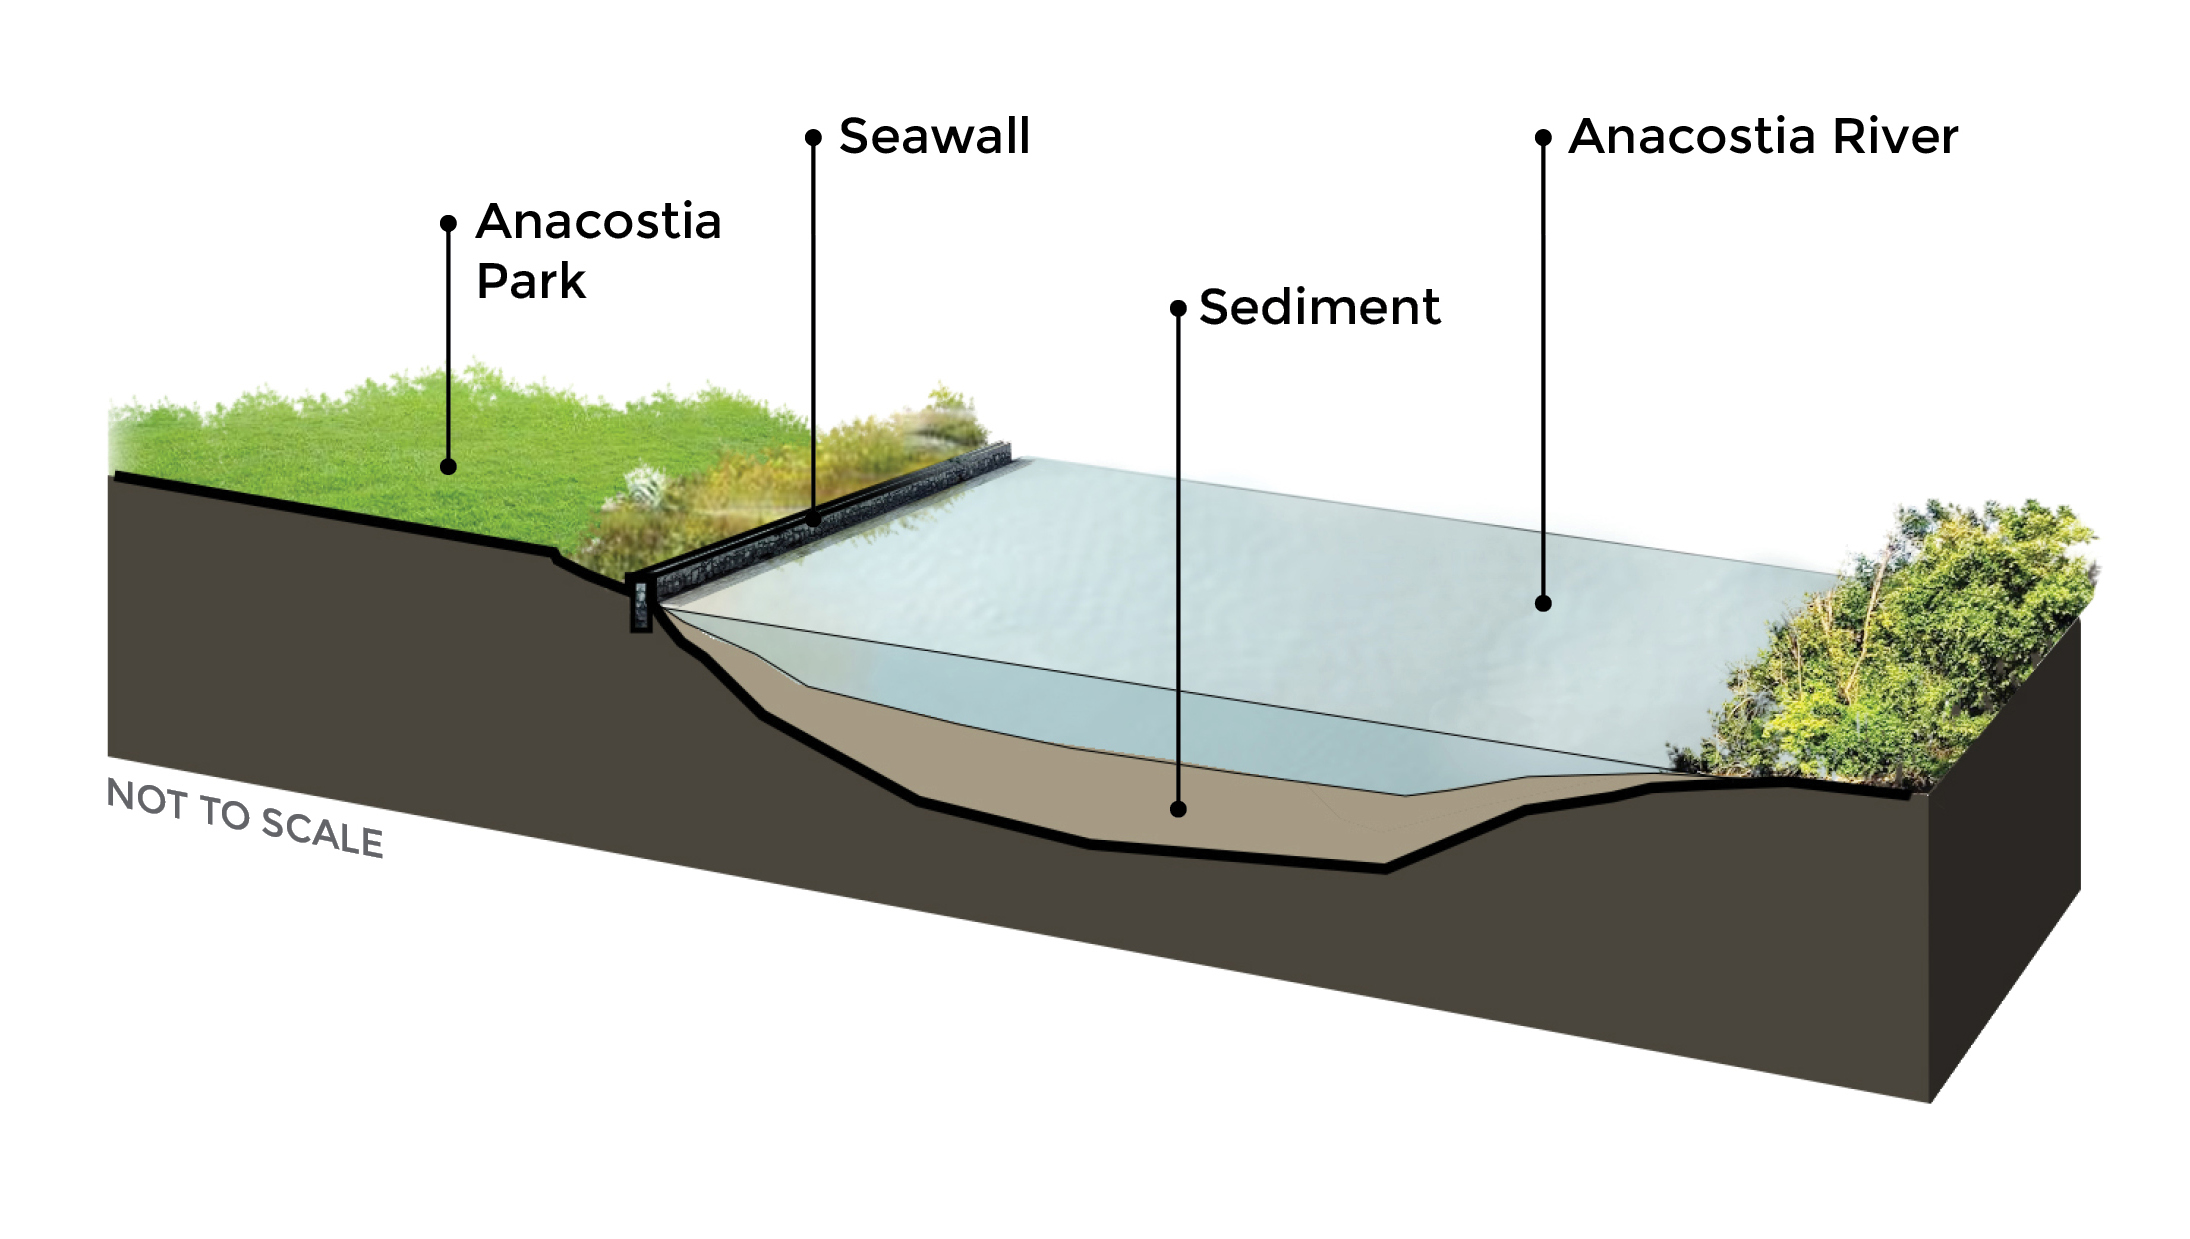 """This is a """"typical"""" diagram of the sediment at the bottom of the river. It is an illustration, not """"to scale"""". Anacostia Park runs along much of the river in the District but not all of it, and the seawall exists along much of the river but not all of it. The river and sediment depth varies."""